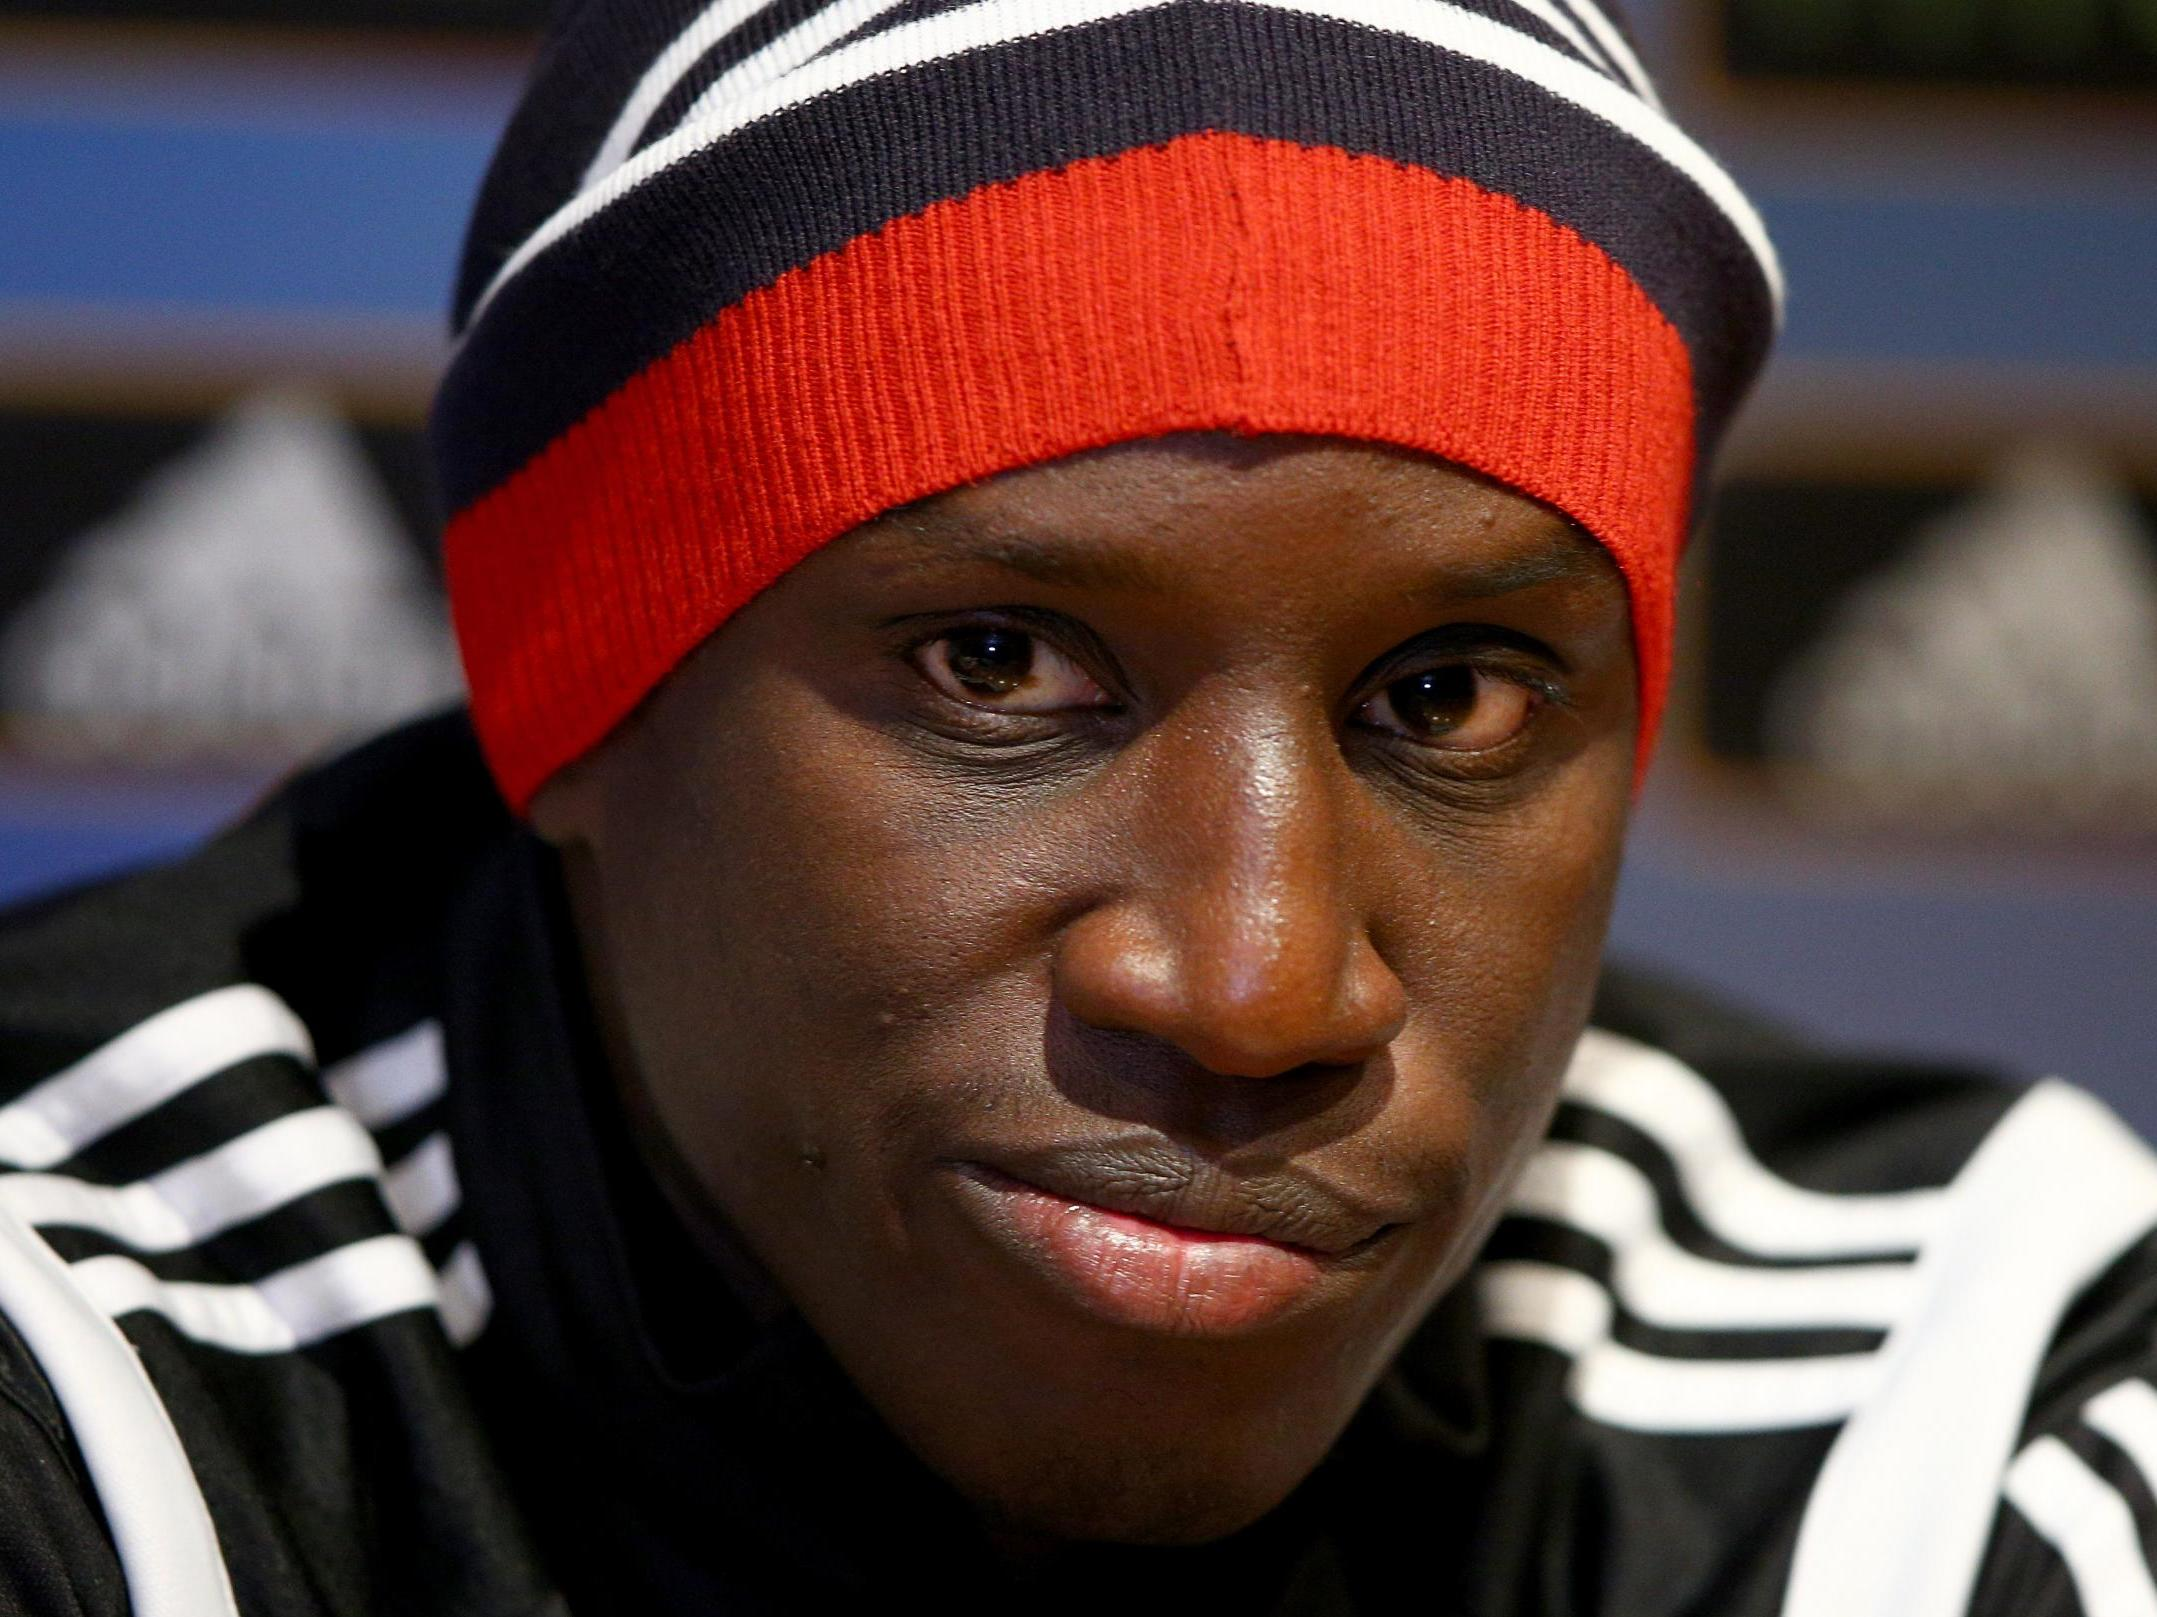 Demba Ba on Chelsea, racism and African players not getting the respect they deserve